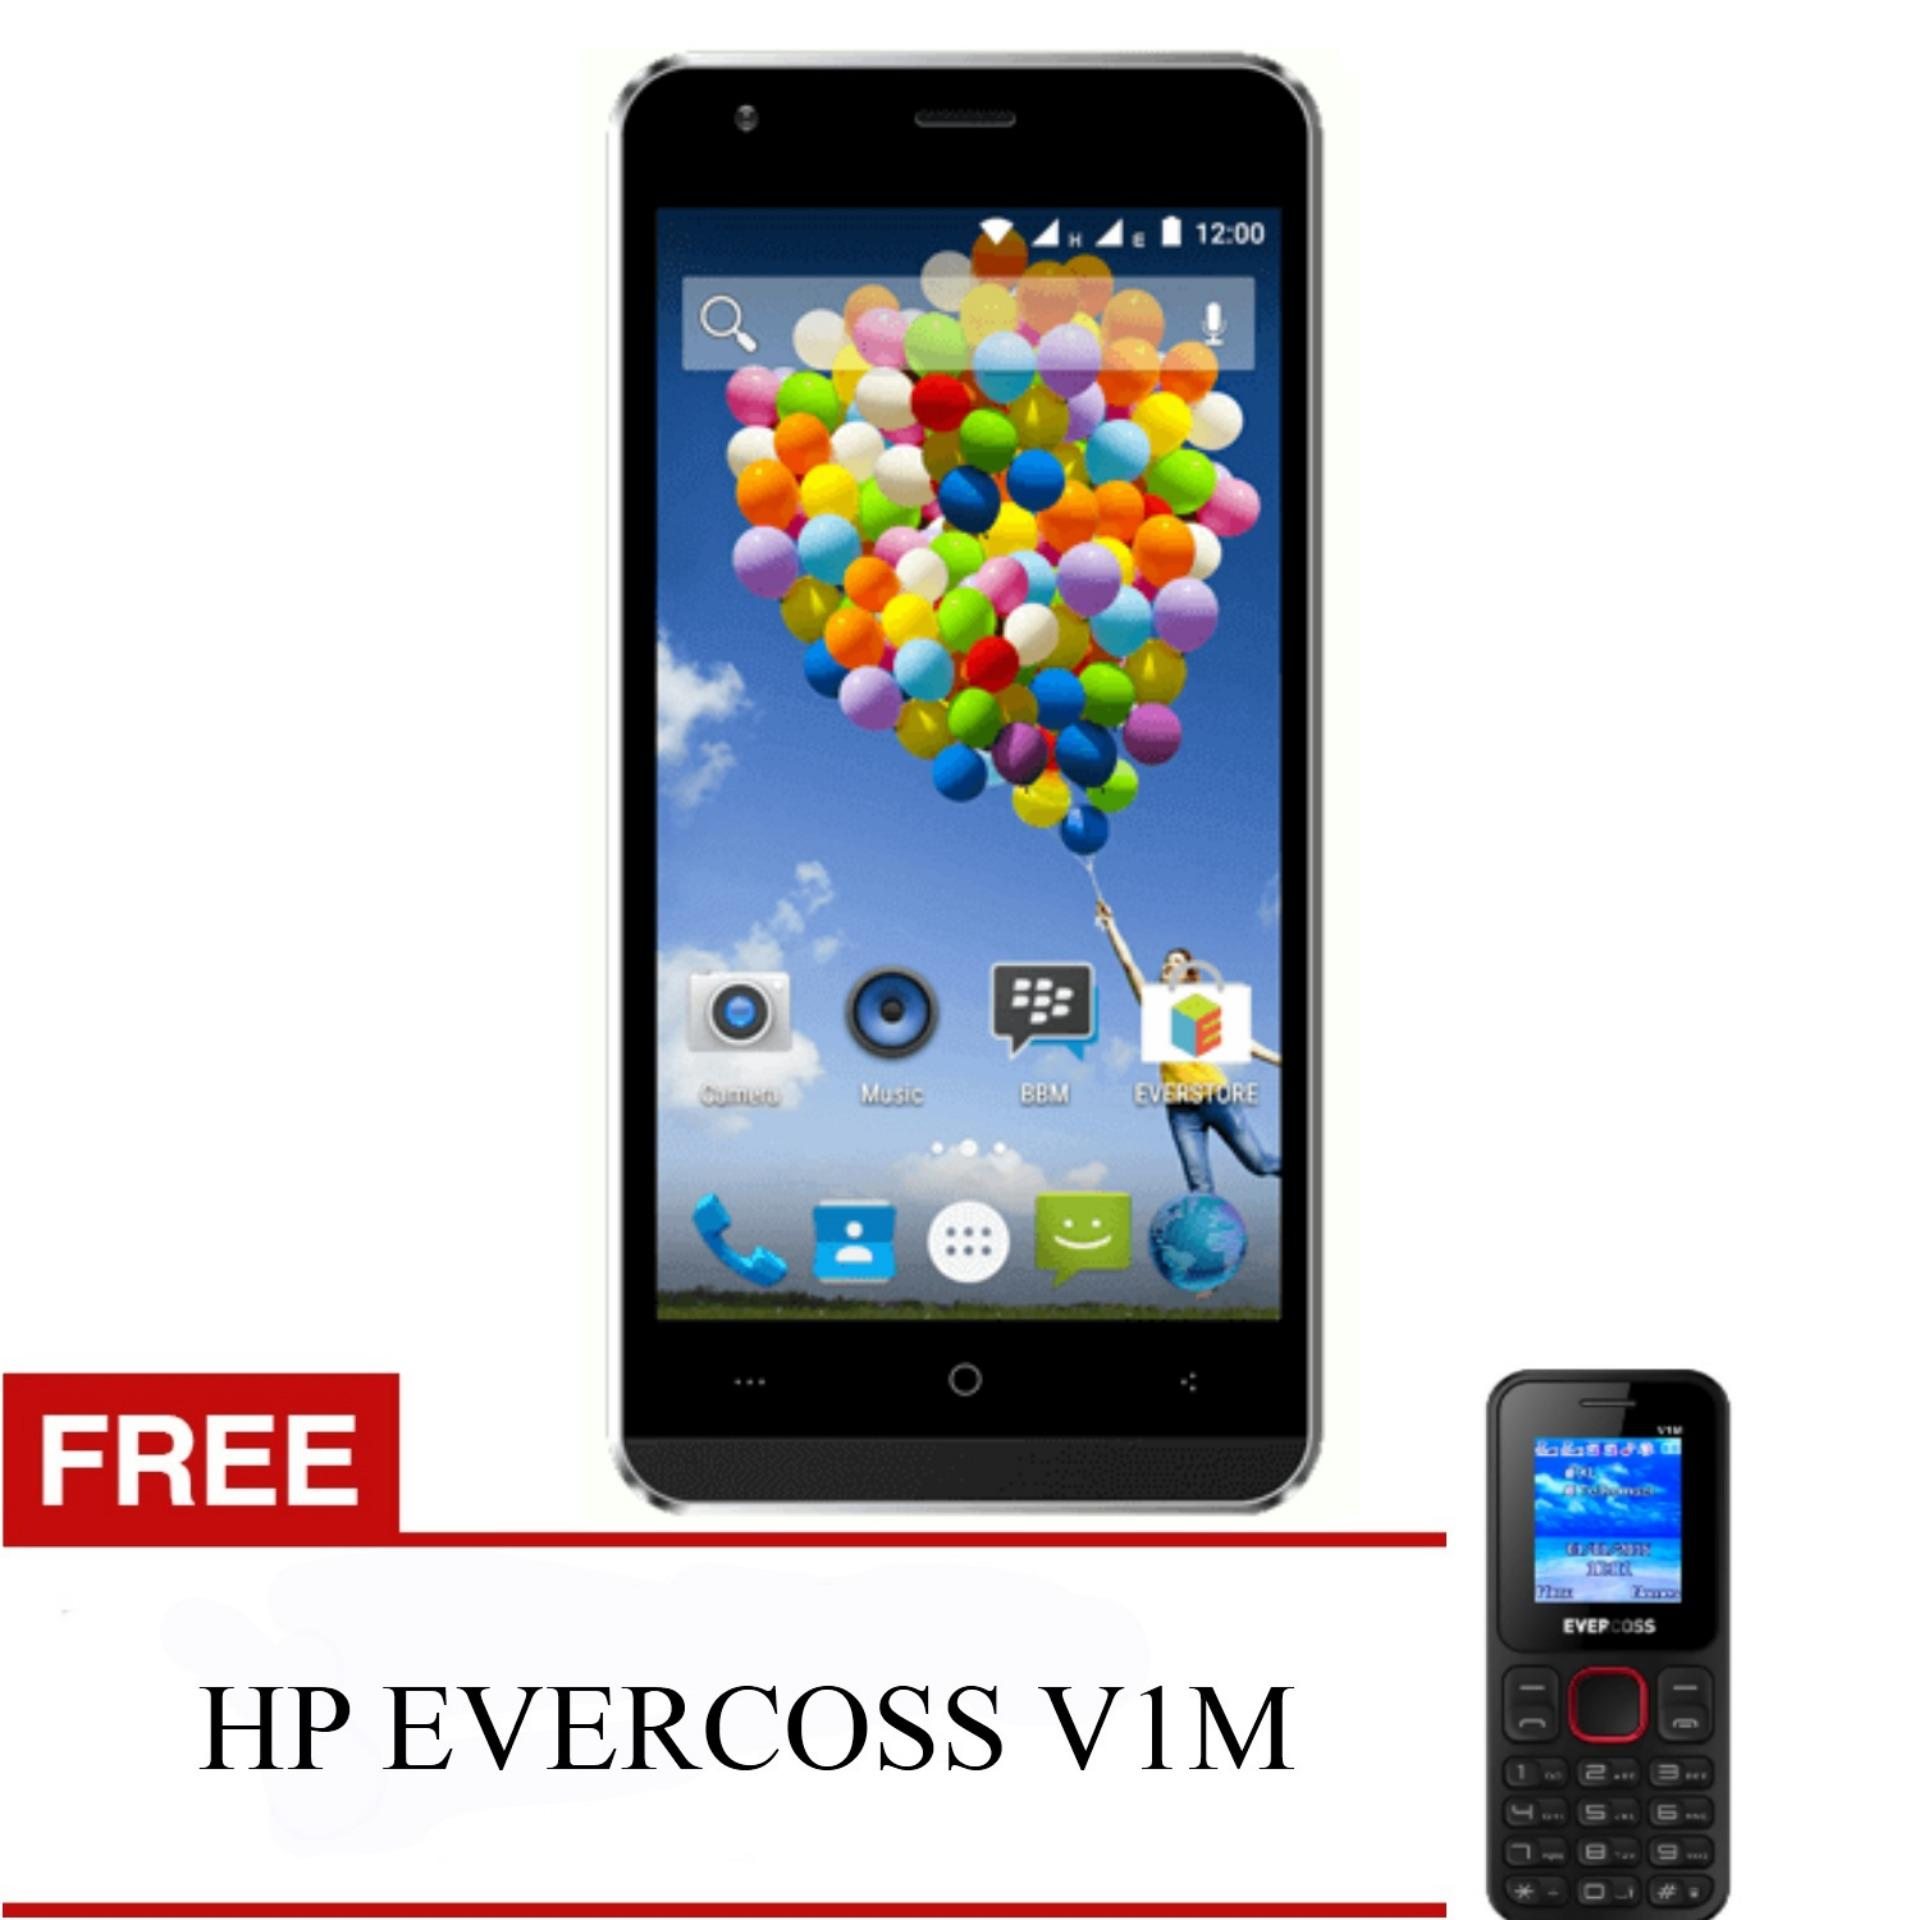 Evercoss A75A Winner Y Ultra RAM 2GB FREE HP EVERCOSS V1M